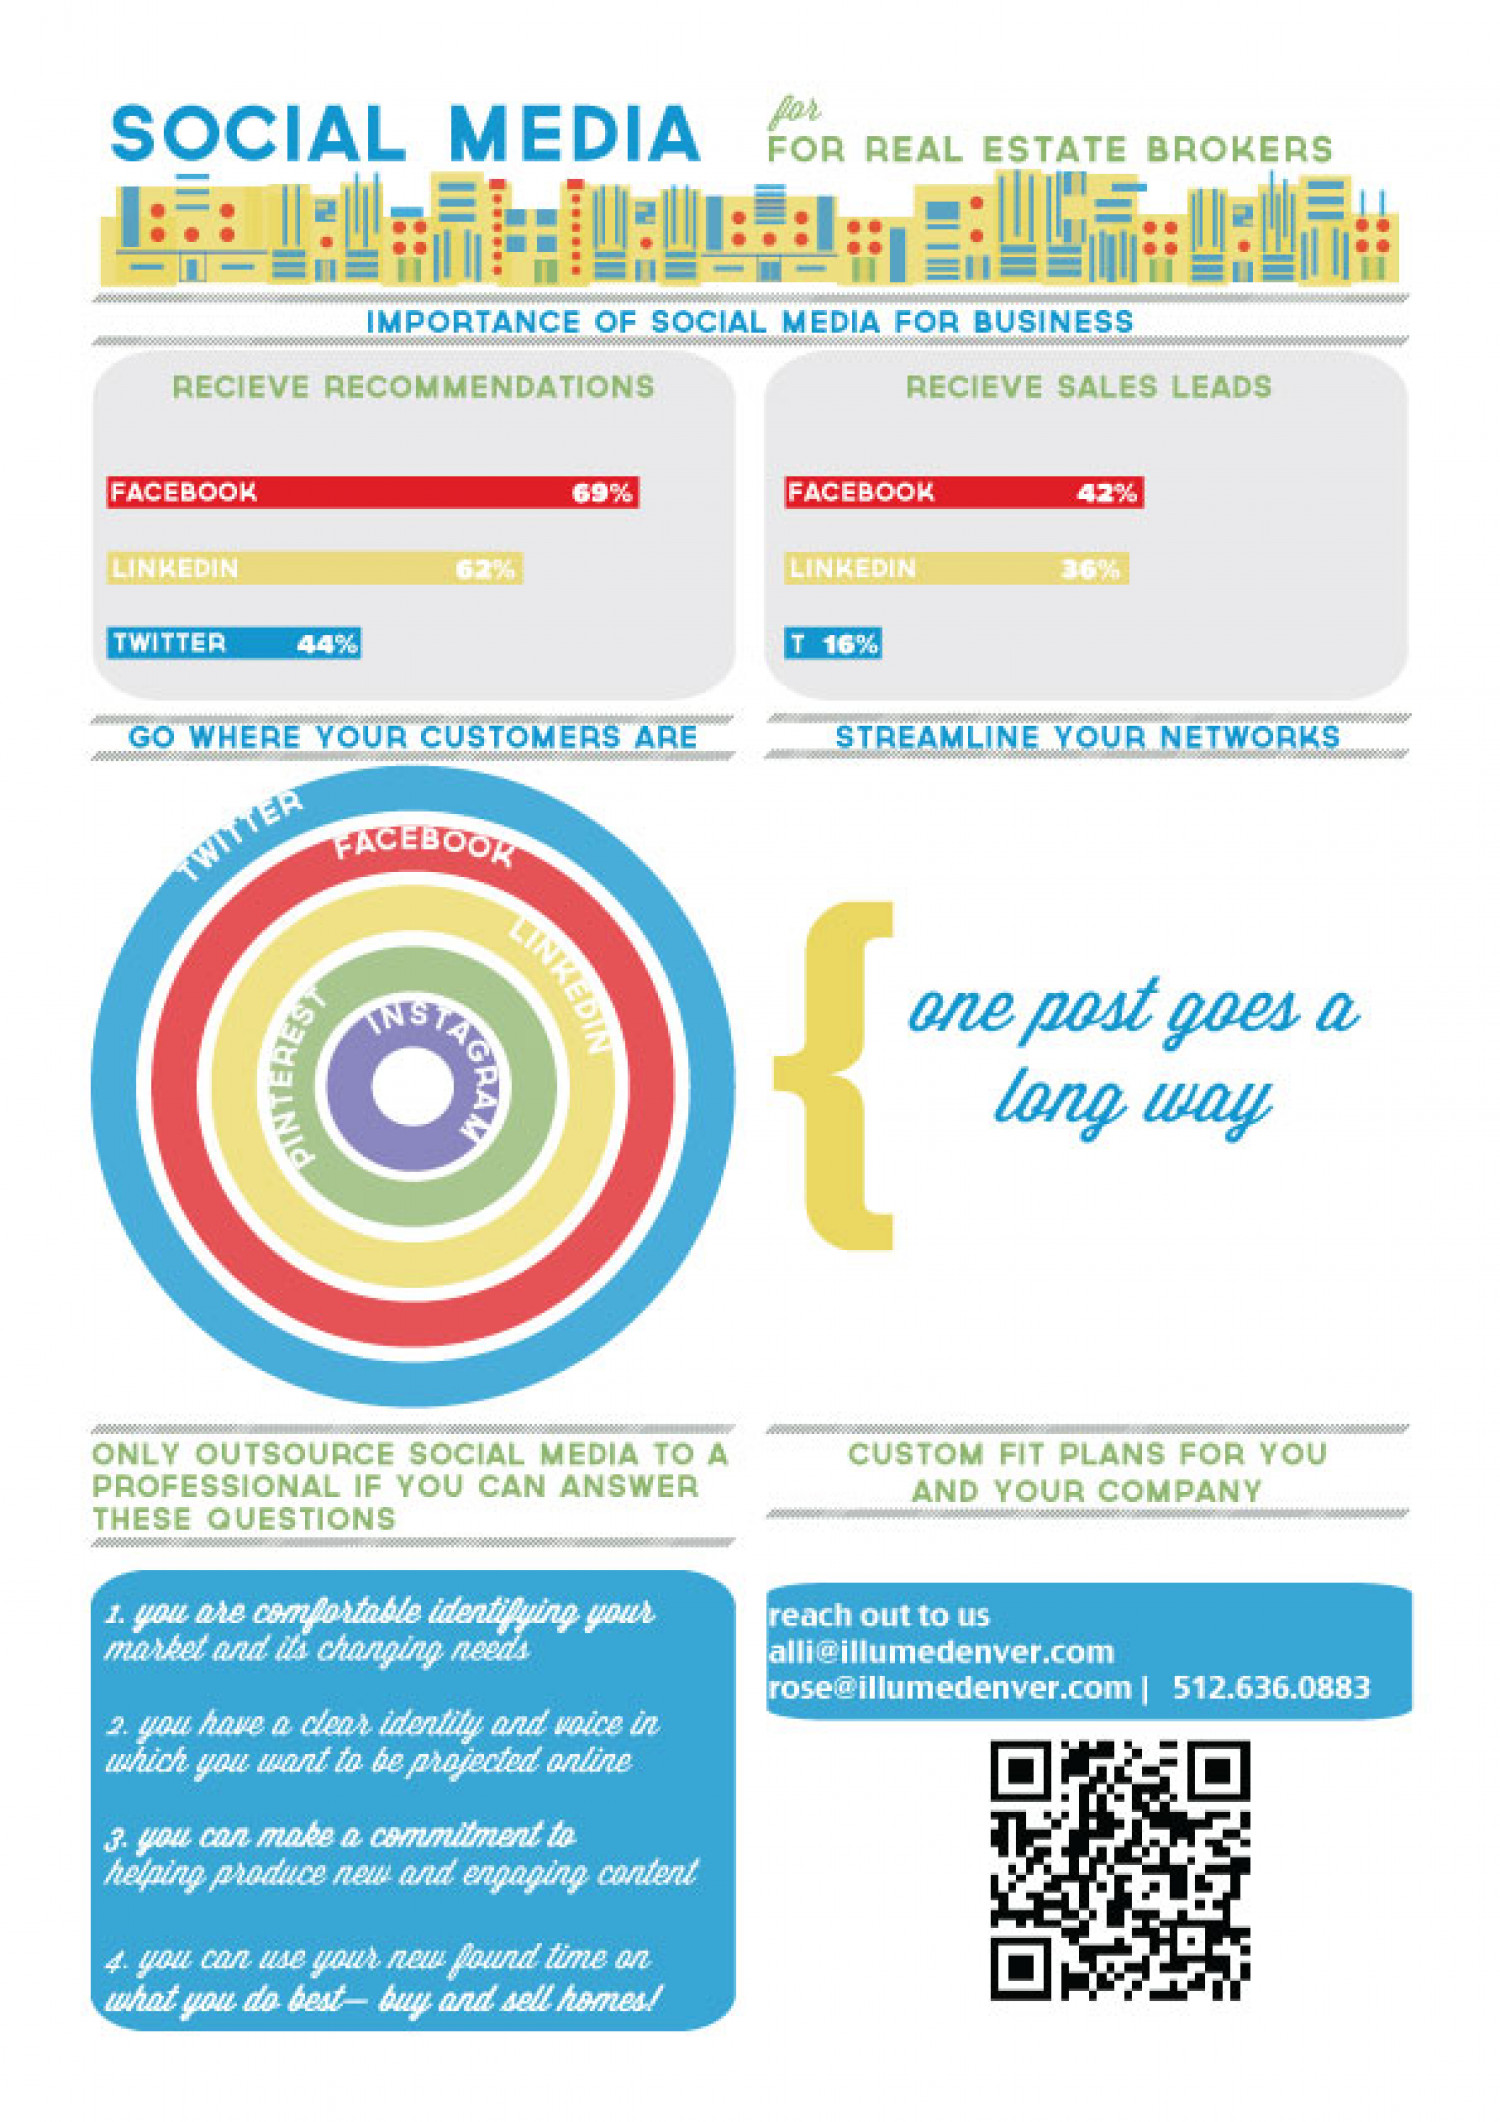 Social Media for Real Estate Brokers Infographic